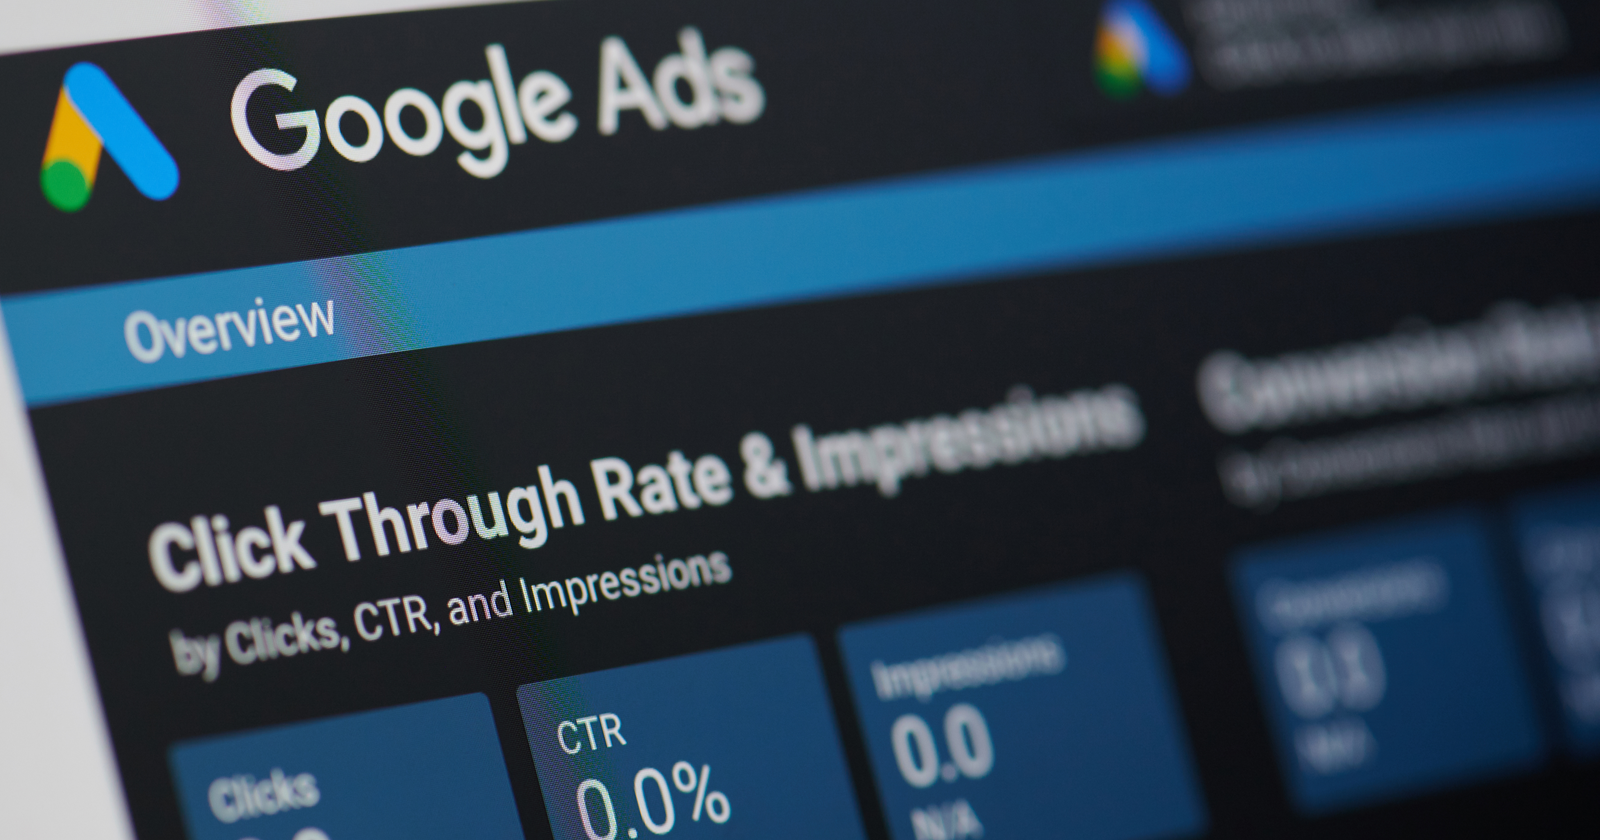 QnA VBage Google Ads is Bringing Click Share to Search Campaigns by @MattGSouthern